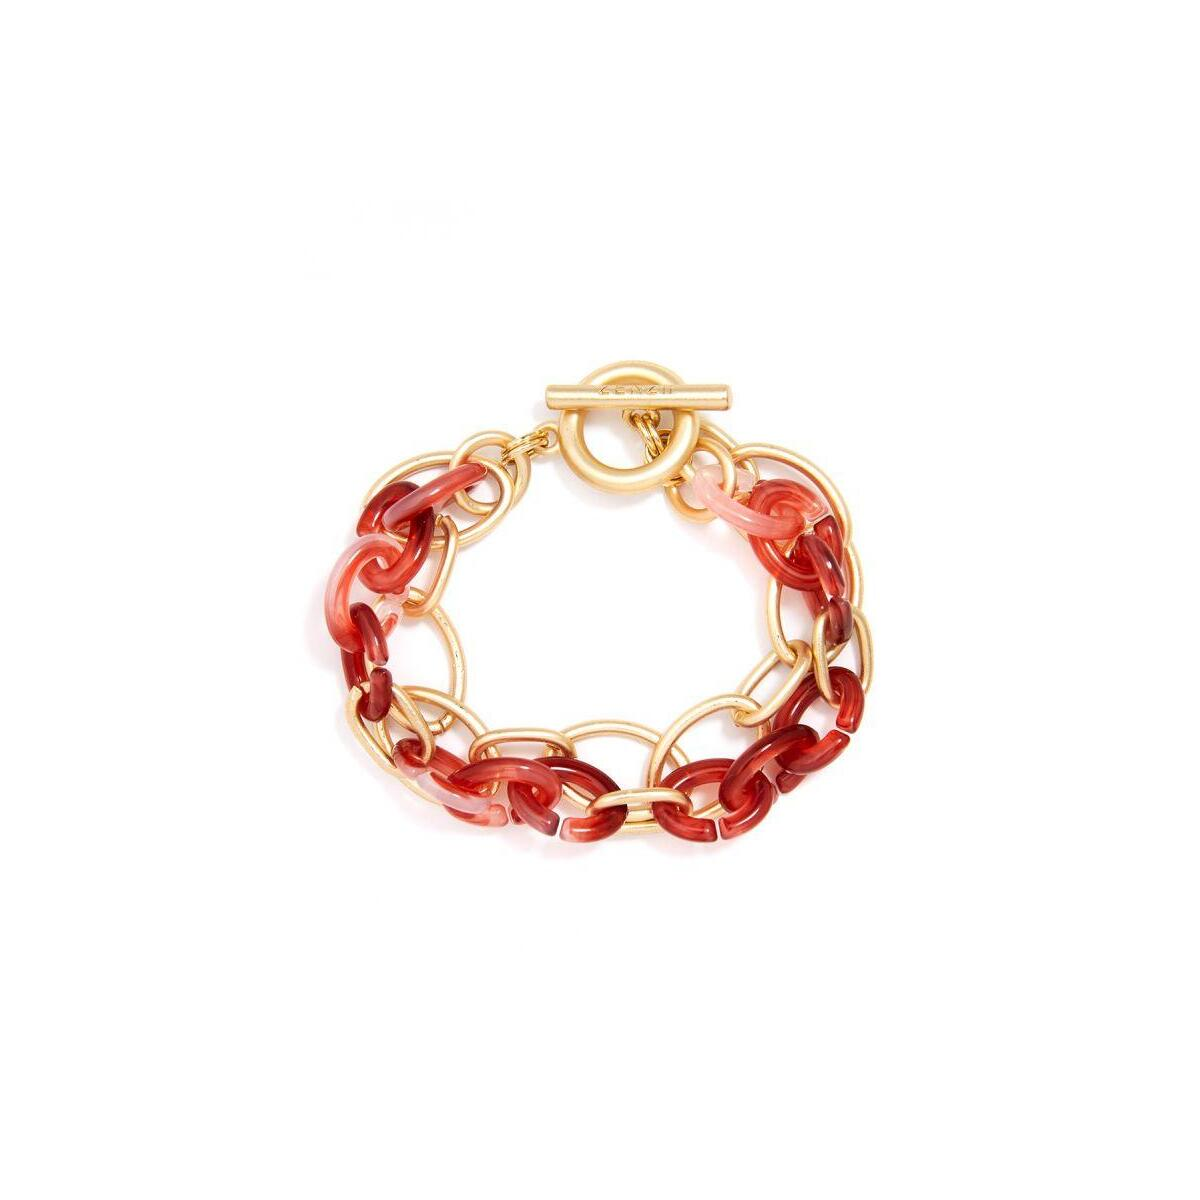 Oval Links & Marbled Resin Bracelet Jewelry, Red